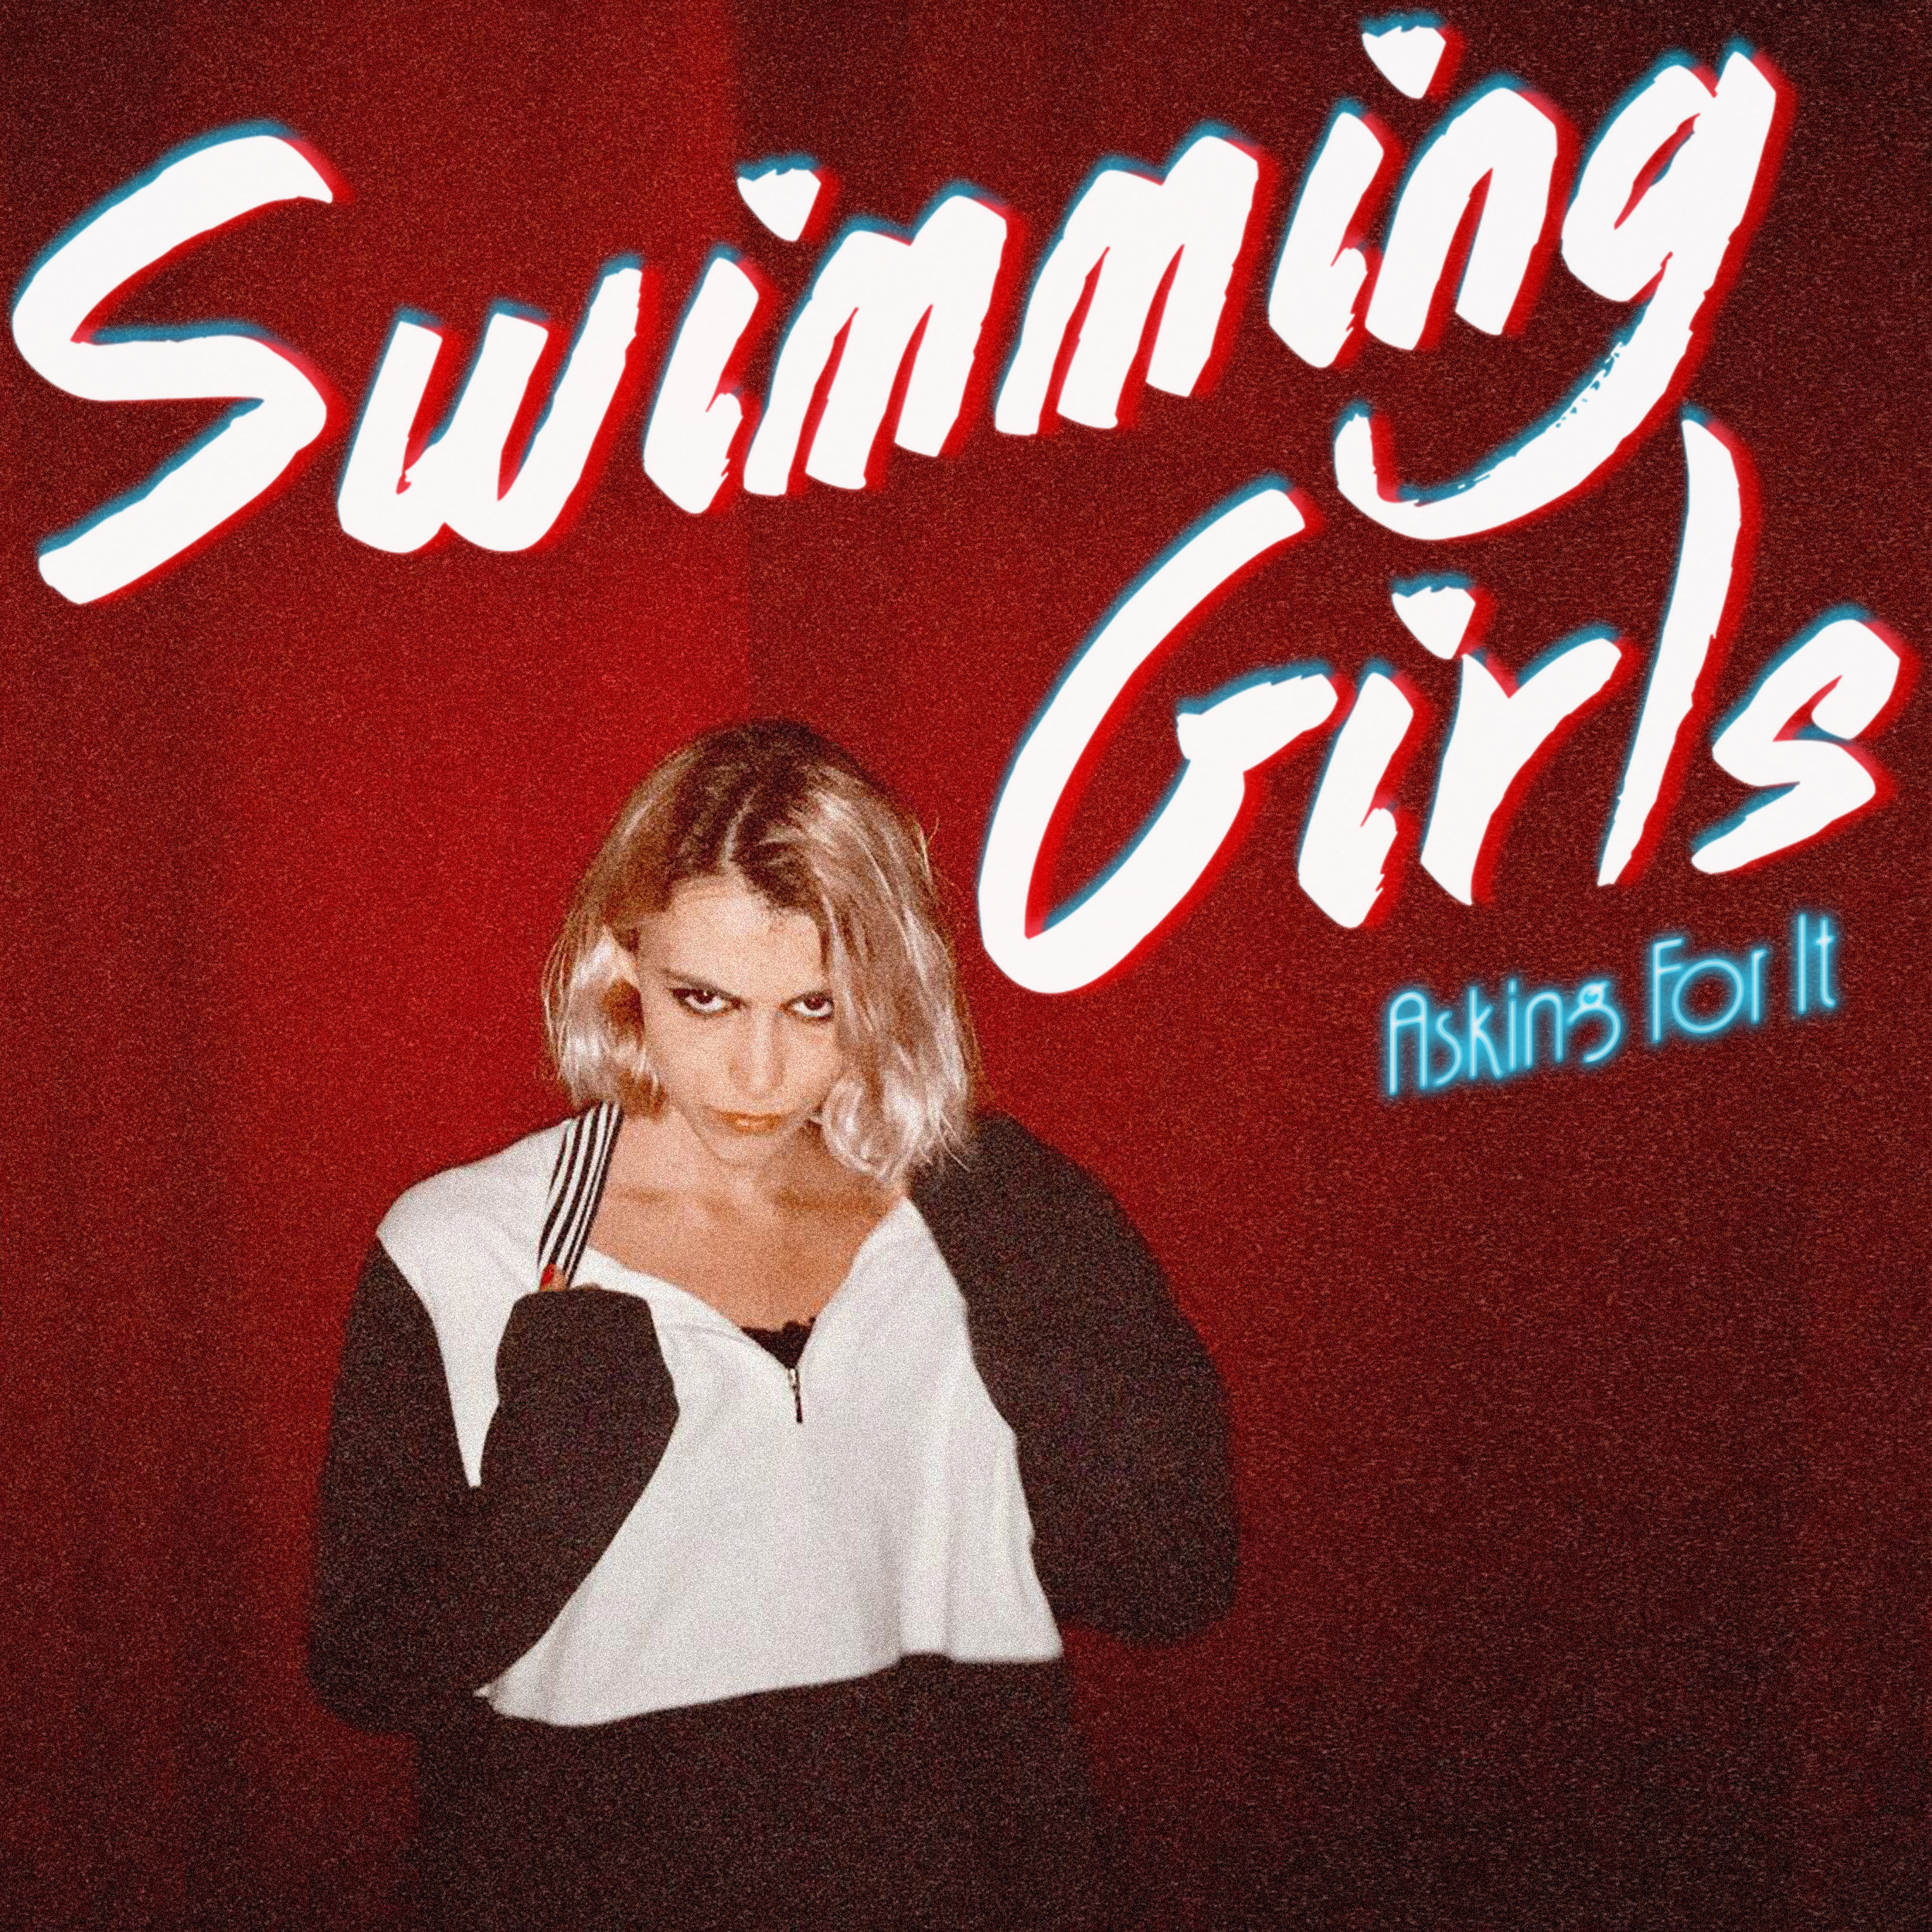 SWIMMING GIRLS - ASKING FOR IT